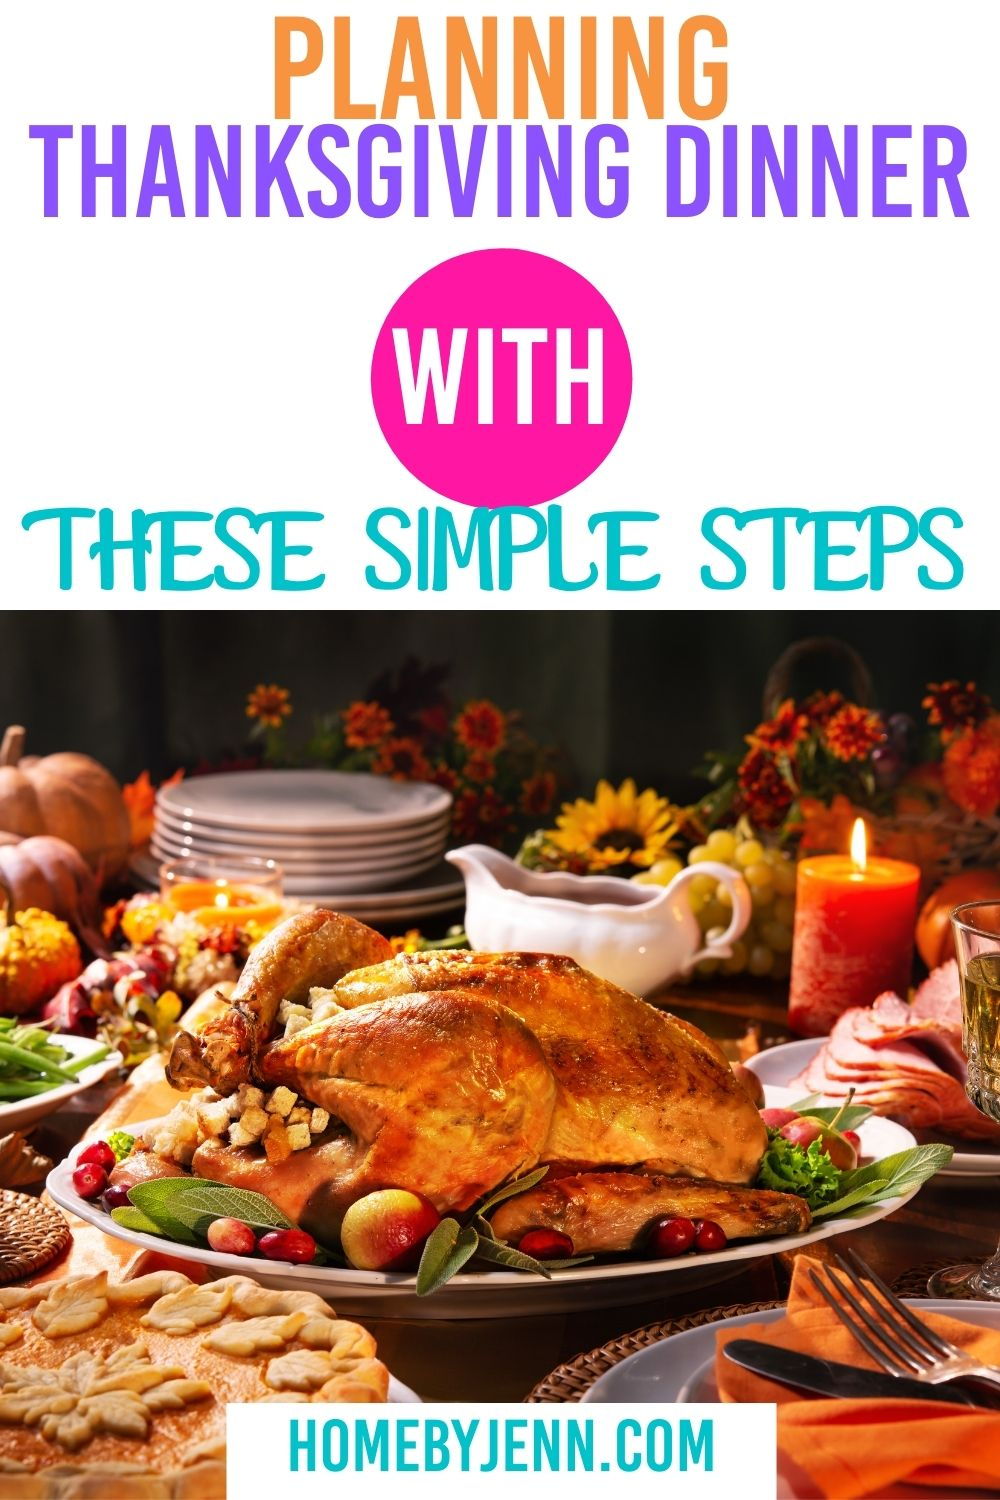 Since we all know how stressfulplanning Thanksgiving dinner is, I've created a free planning Thanksgiving dinner planner to help you! #Thanksgiving #planning #organized #gettingorganized #hosting #howto via @homebyjenn